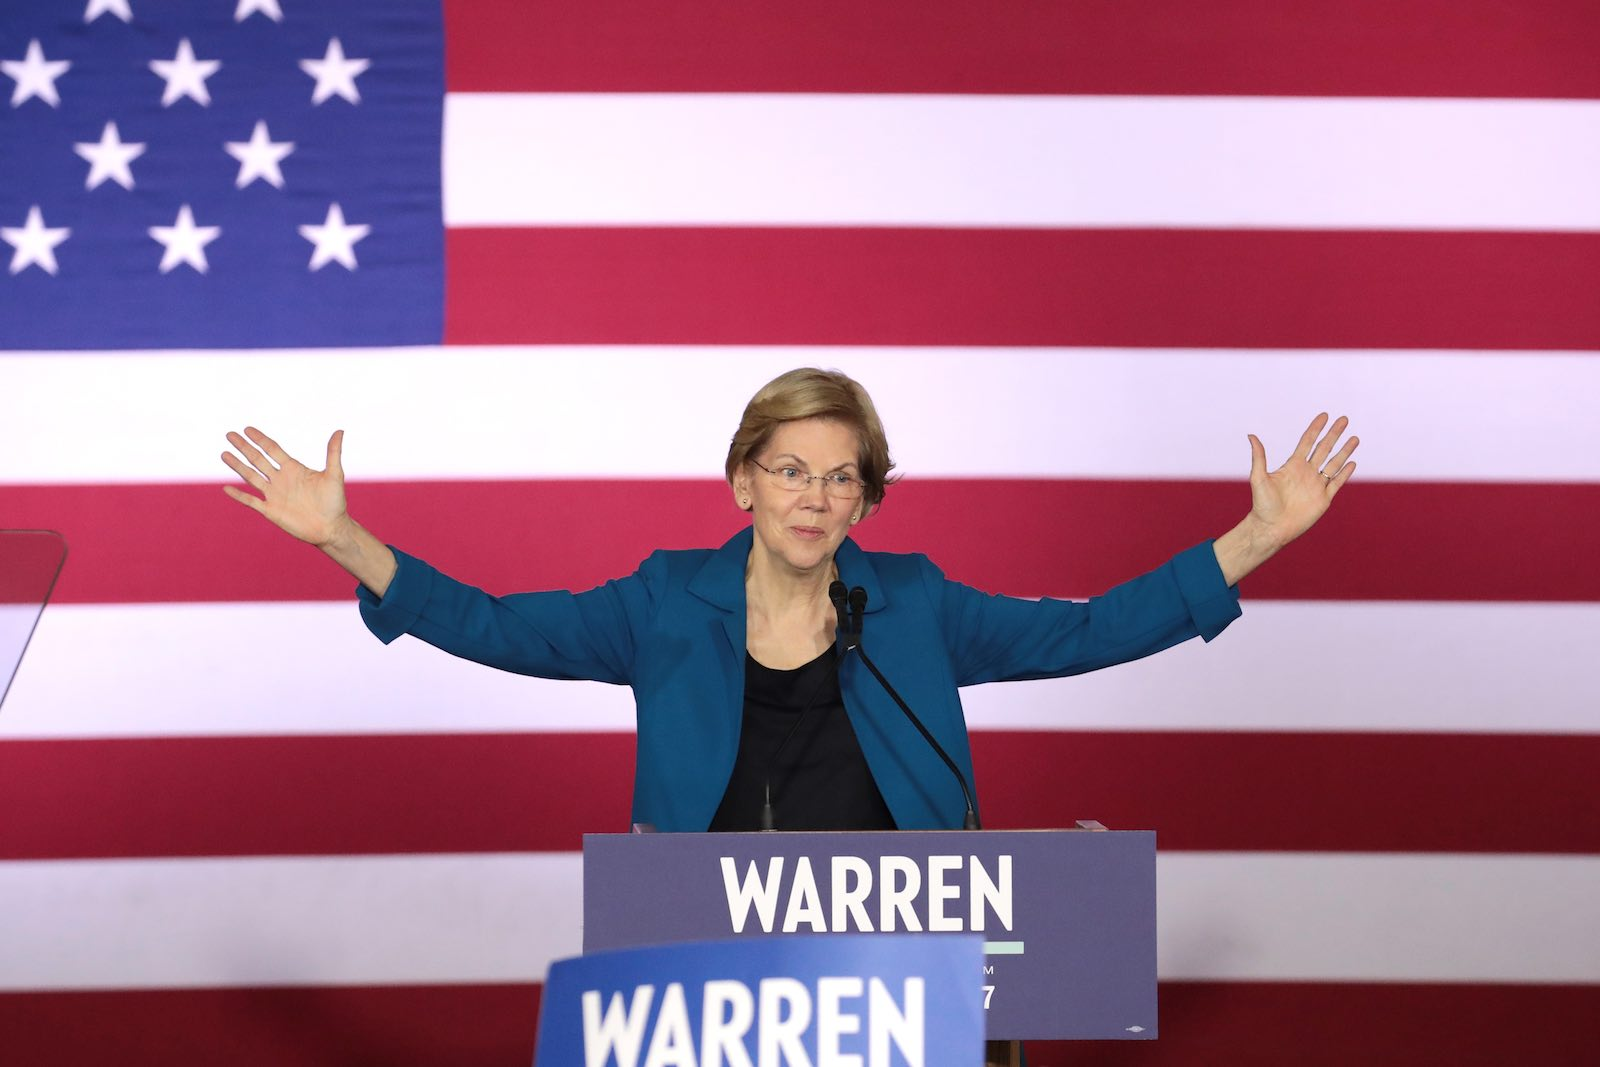 Elizabeth Warren speaking at a primary night event in Manchester, New Hampshire, 11 February 2020 (Scott Olson/Getty Images)